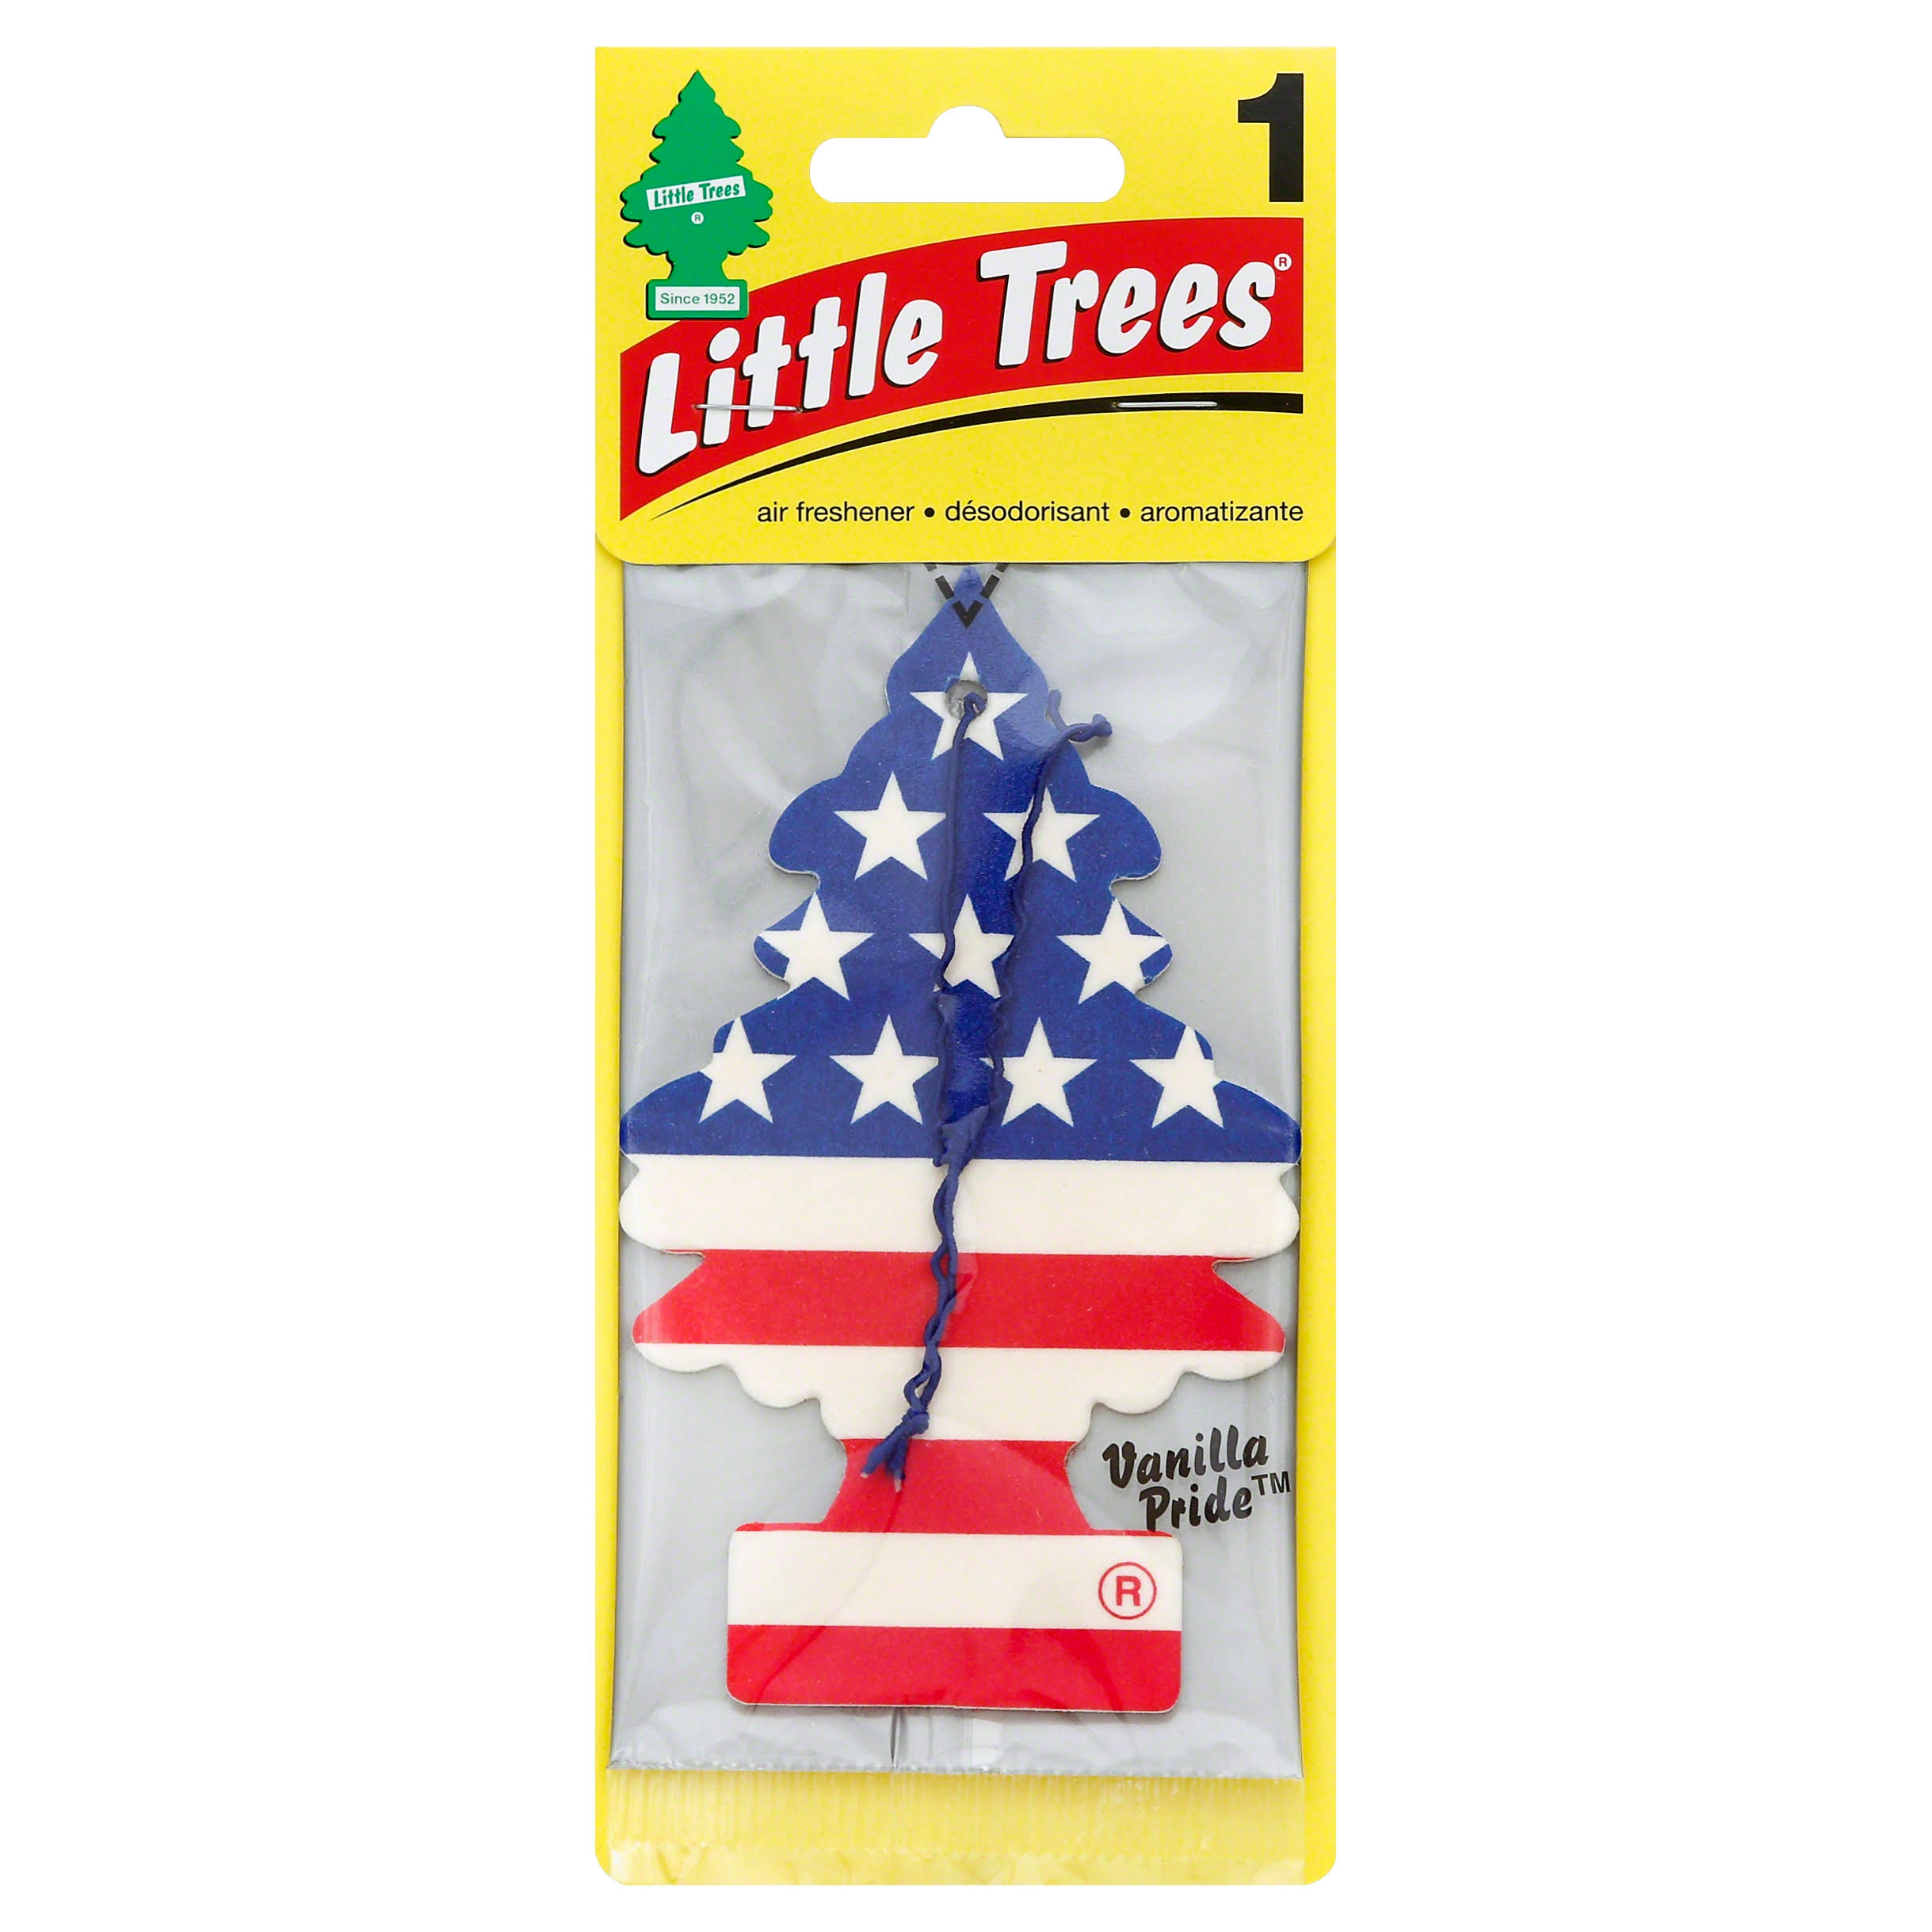 Car Freshener Little Tree Air Freshener - Vanilla Pride